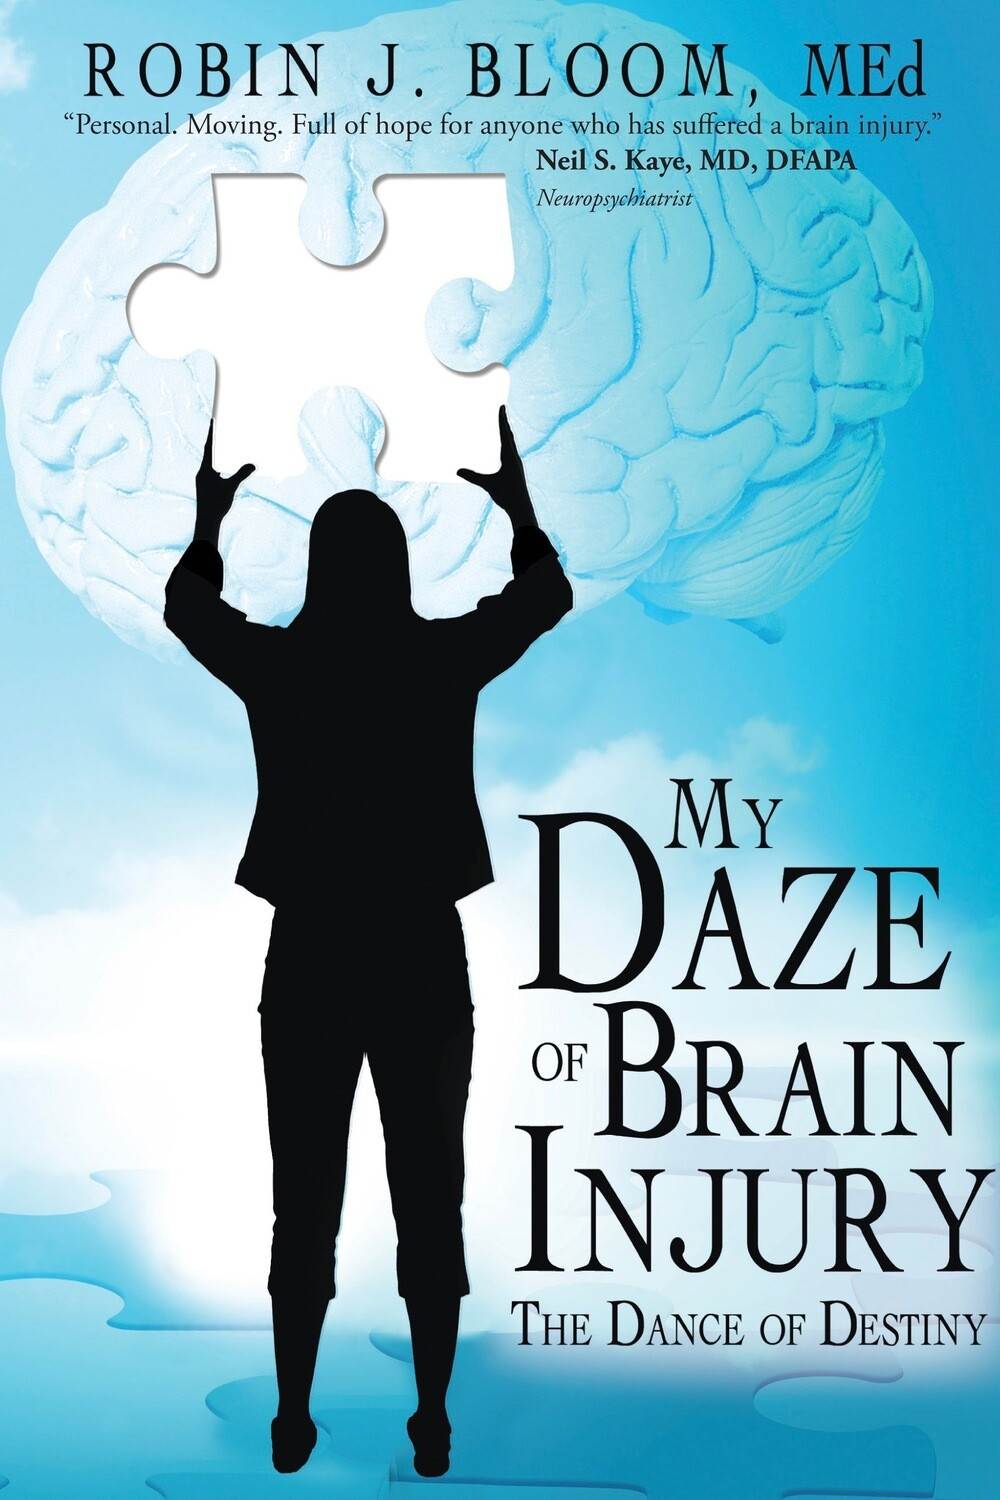 """""""My Daze of Brain Injury: The Dance of Destiny"""" details Robin's journey in learning how to sustain love. To purchase, click the """"AMAZON"""" link in the Description. *Your purchase  supports Veterans."""